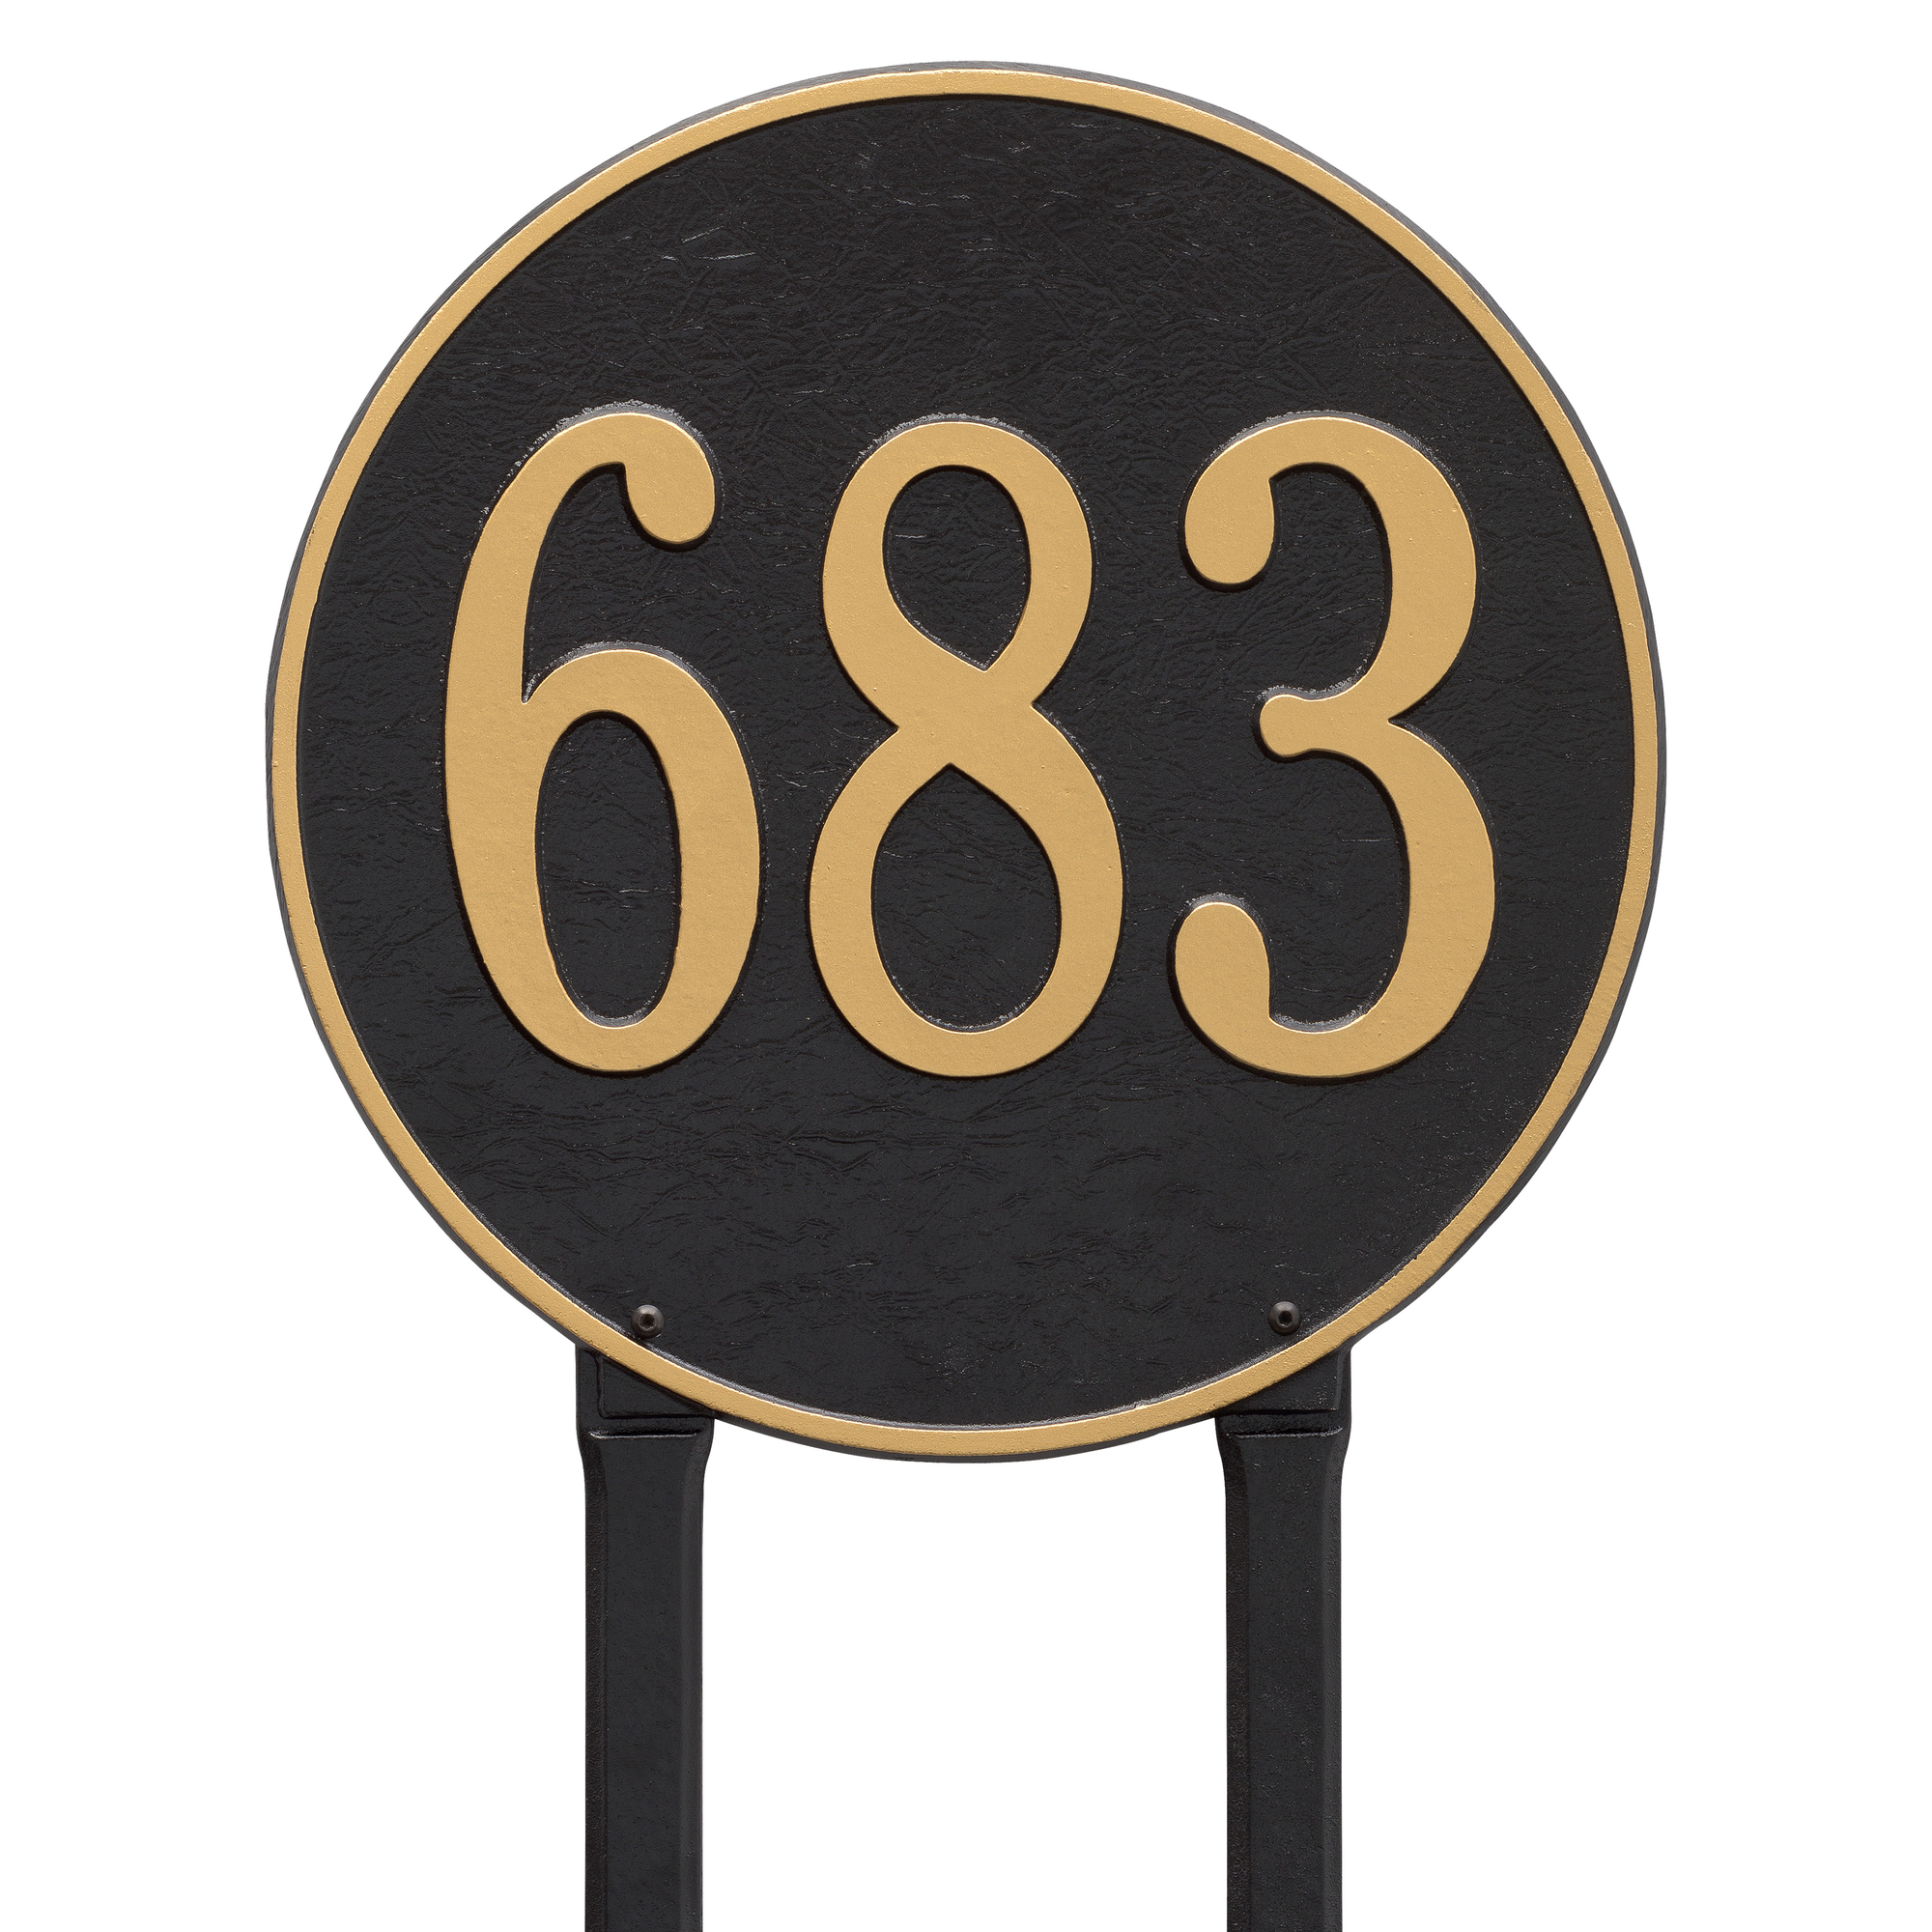 Personalized Whitehall Products 15-Inch Round Lawn Address Plaque in Black Silver by Address Plaques